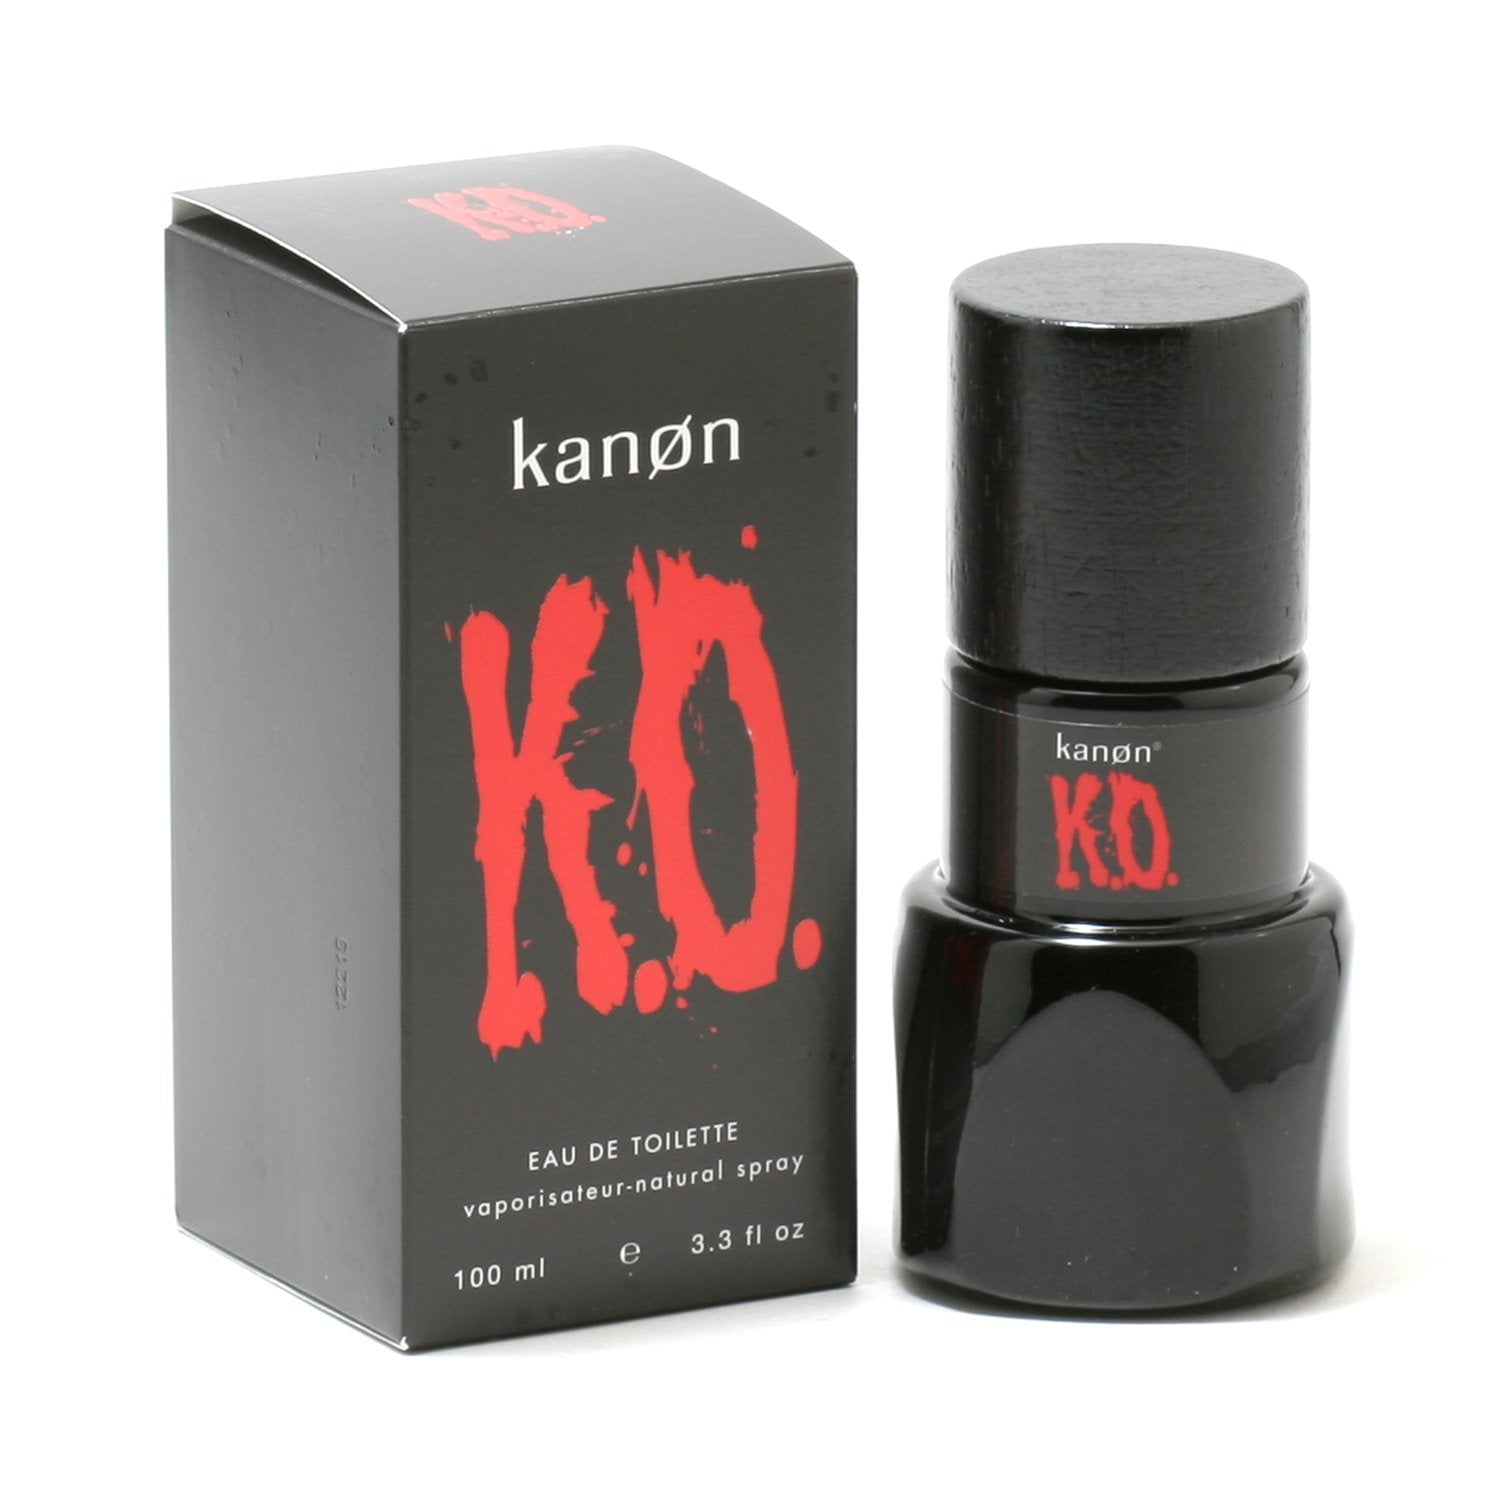 Cologne - KANON K.O. FOR MEN - EAU DE TOILETTE SPRAY, 3.4 OZ